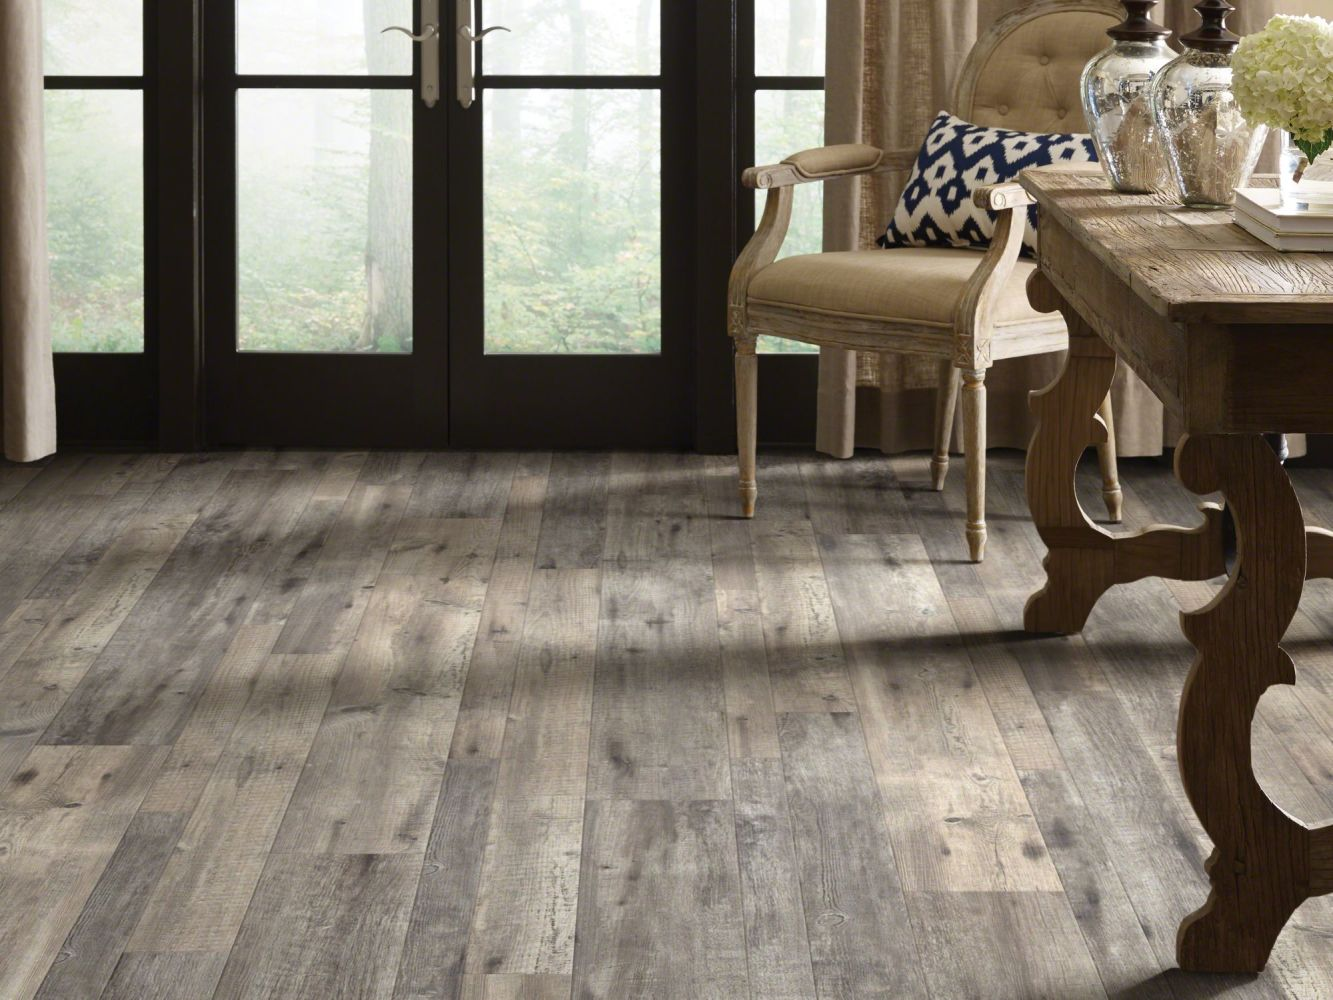 Shaw Floors Resilient Residential Alto Mix Plus Veneto Pine 00539_2662V